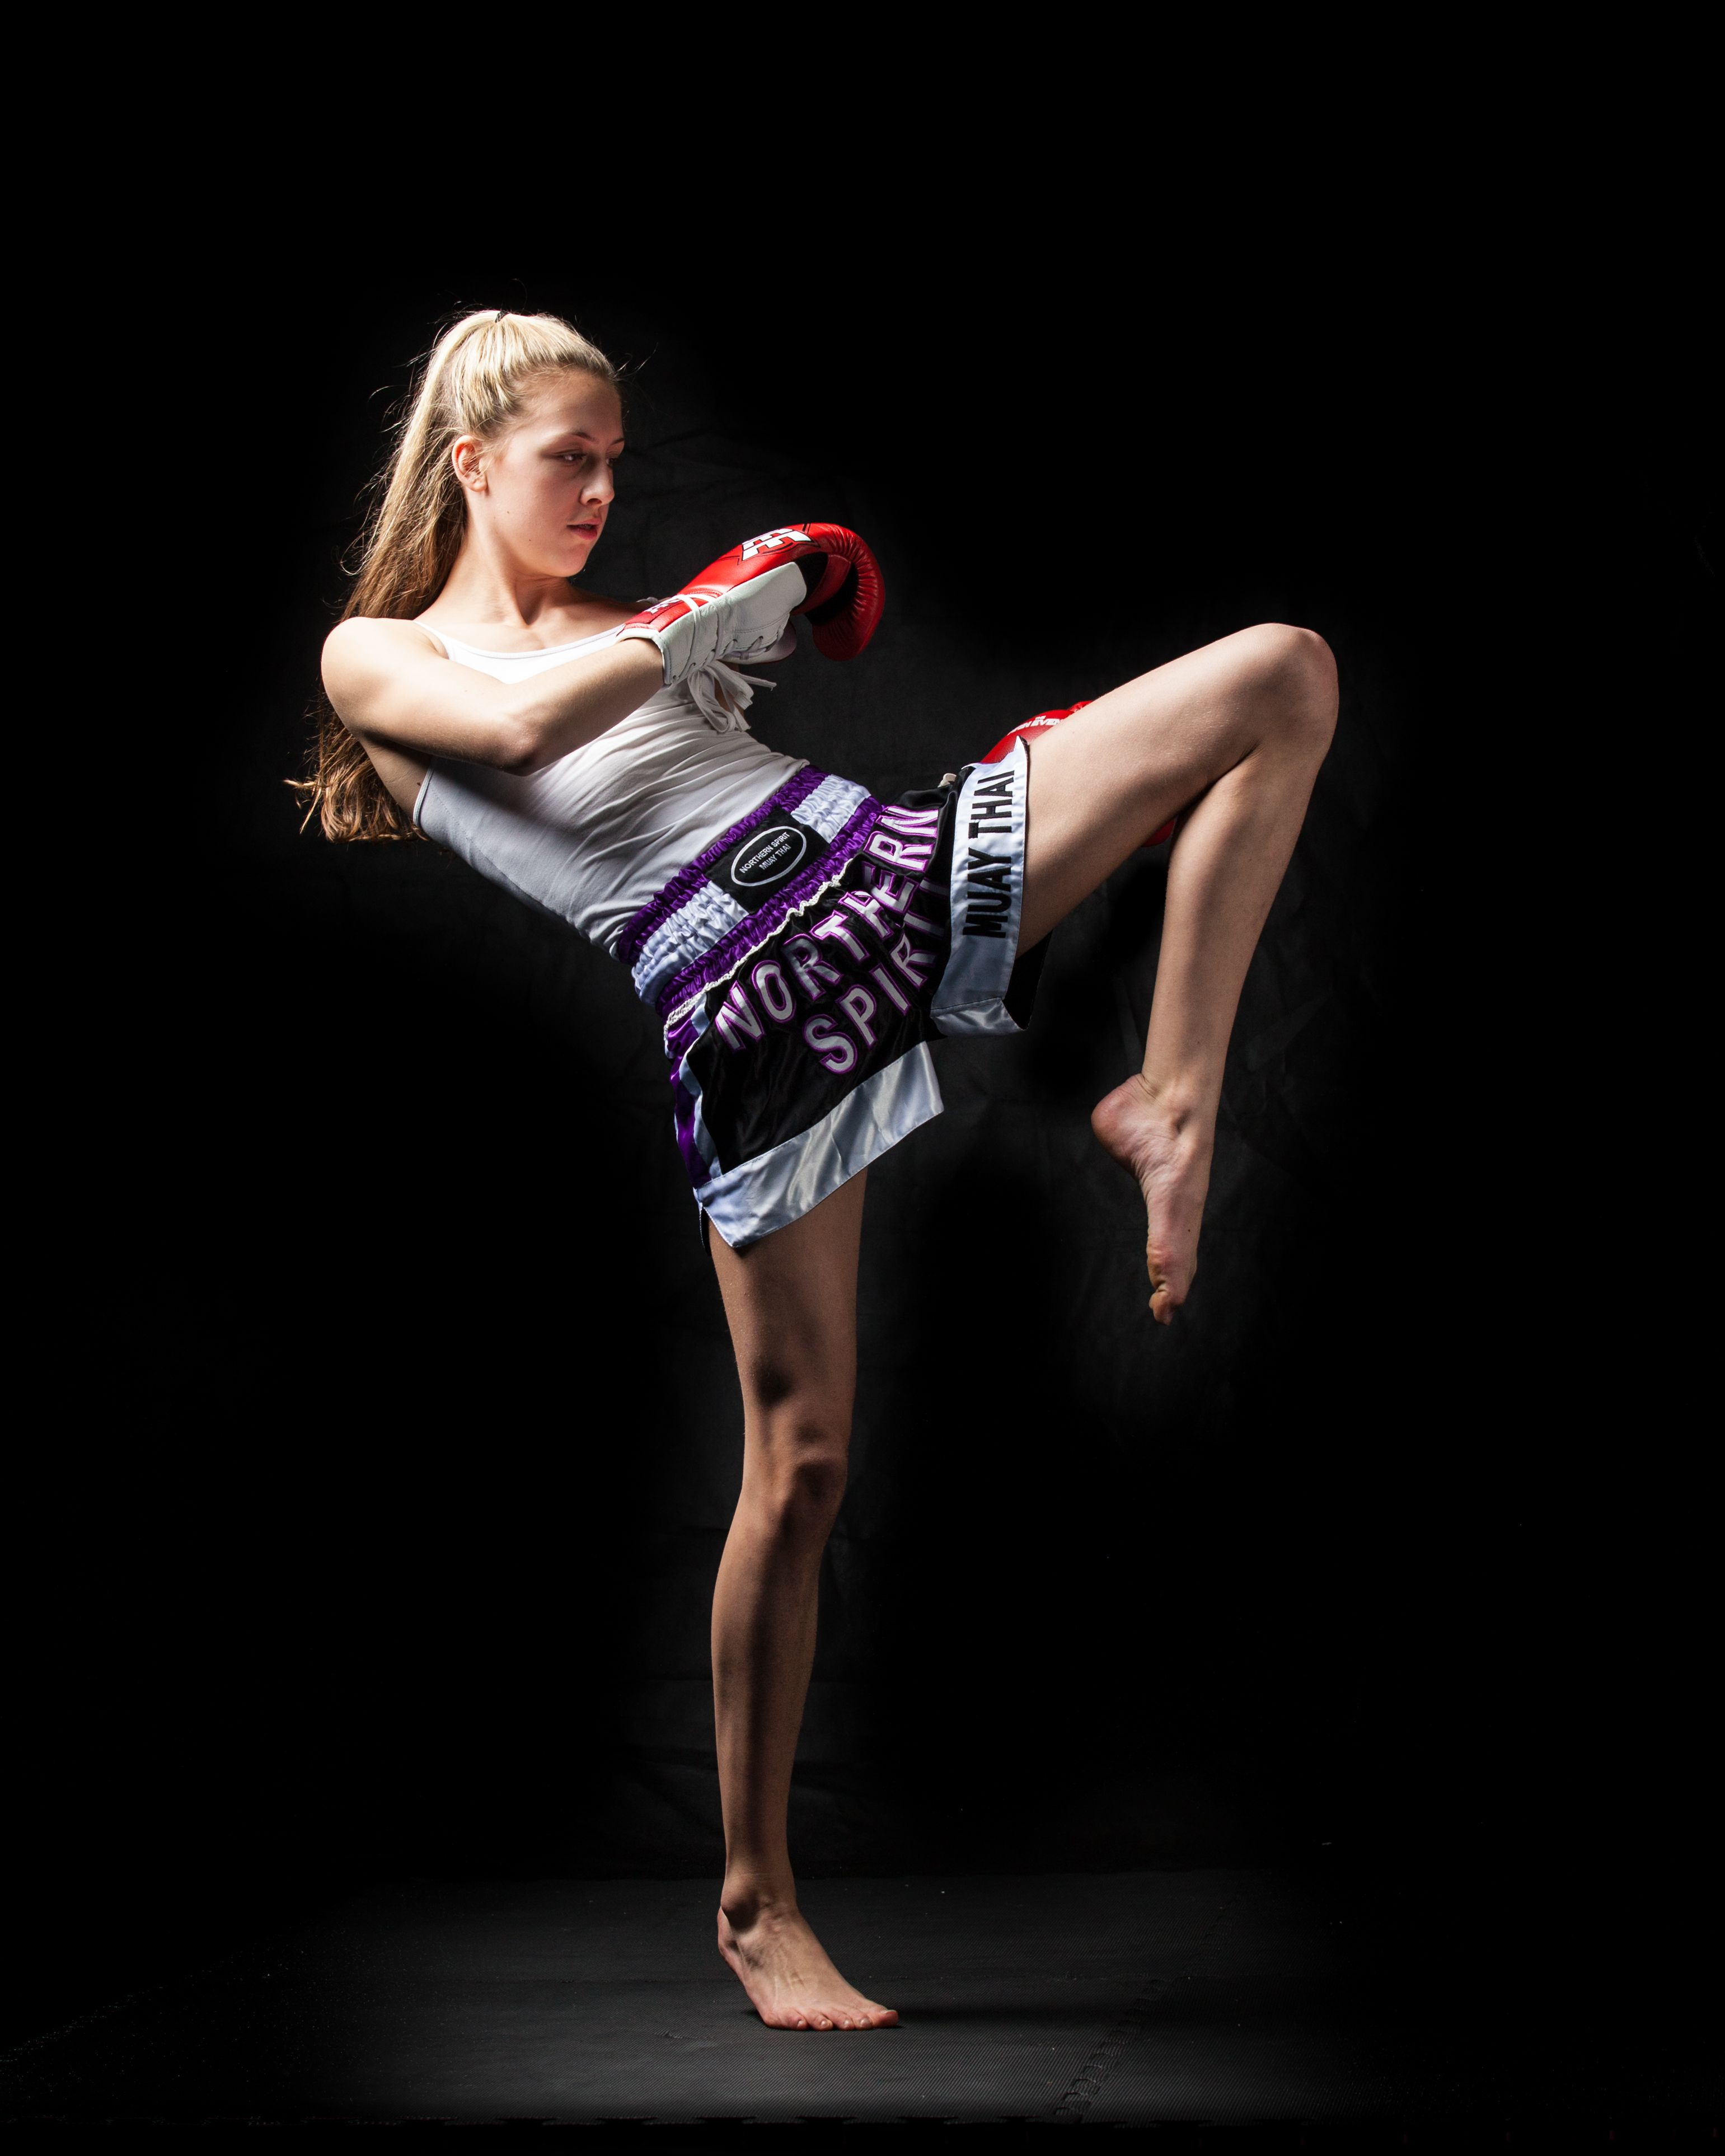 Forum on this topic: Katrina Retallick, dakota-ditcheva-muay-thai/